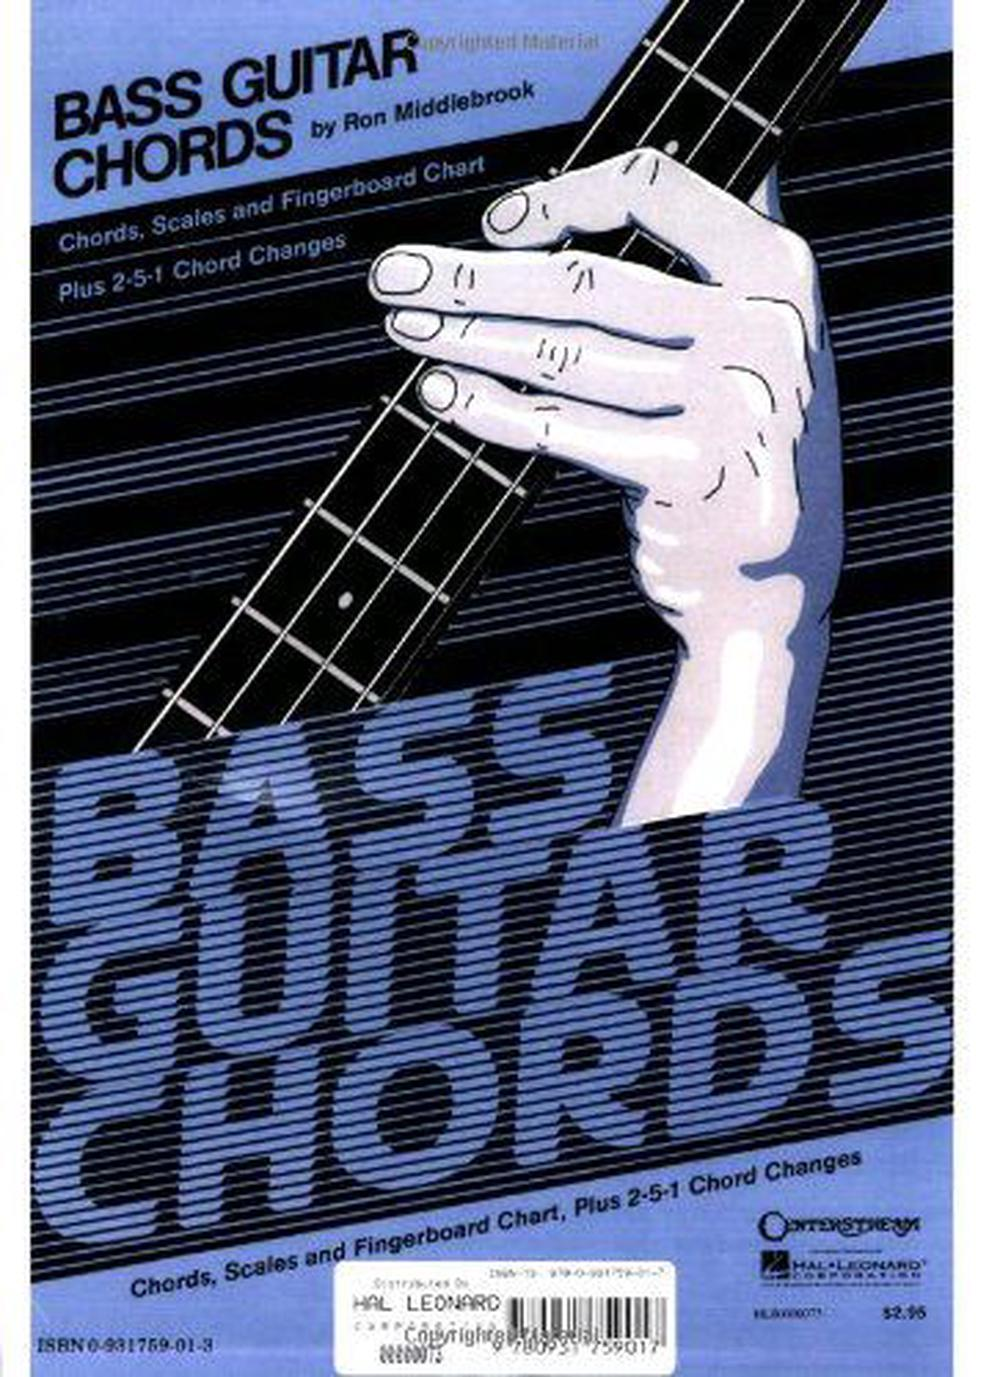 Bass Guitar Chord Chart By Ron Middlebrook English Paperback Book